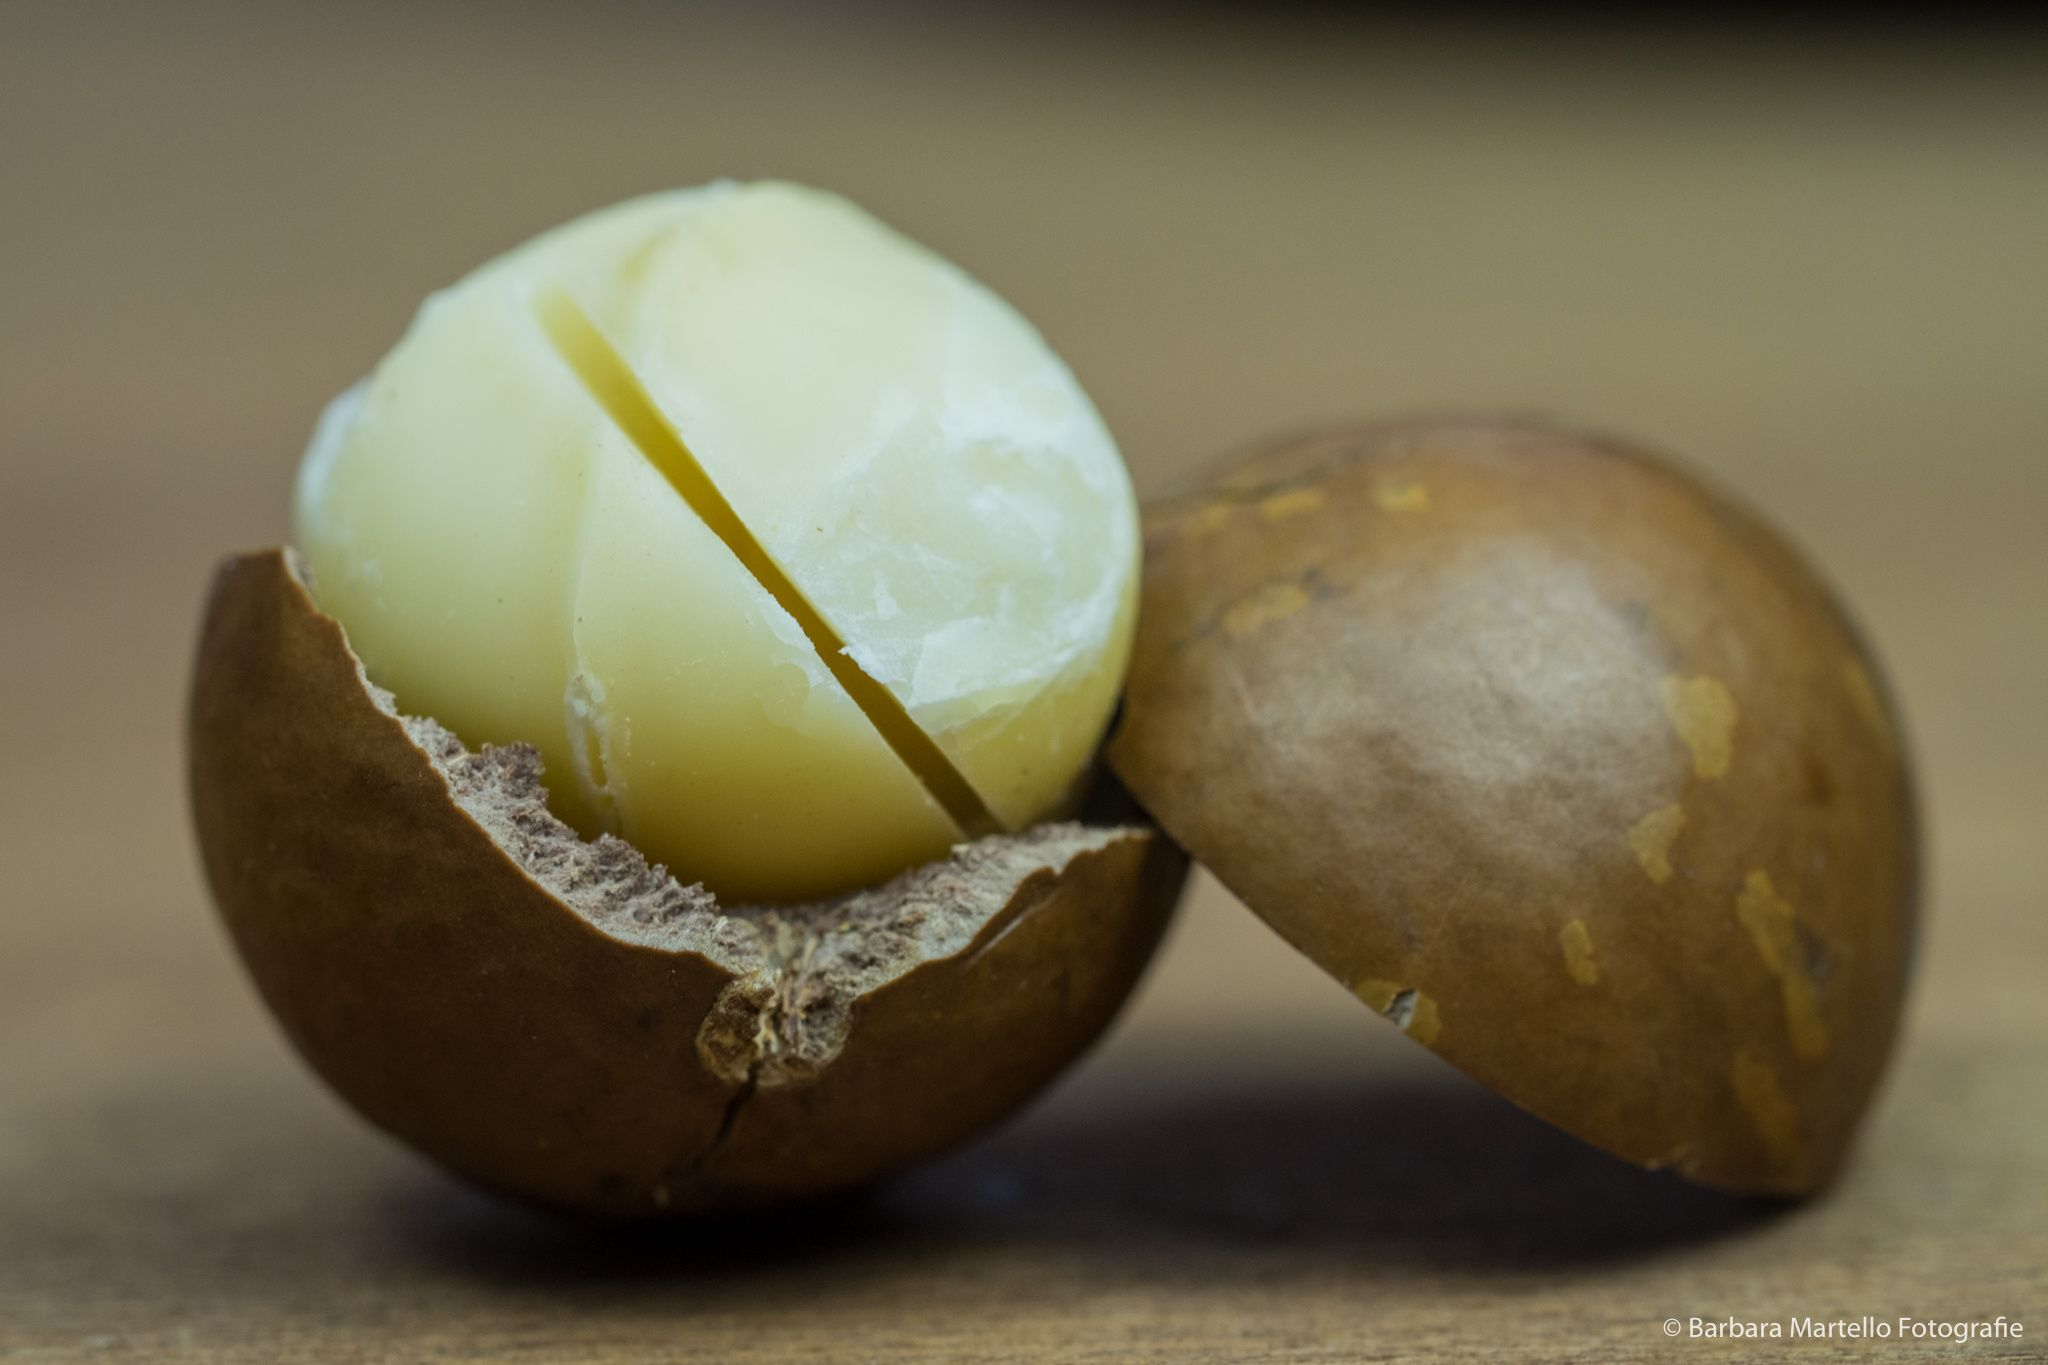 e0971034a16e96af7fbb022260ee6693 - How To Get Macadamia Nuts Out Of Their Shells